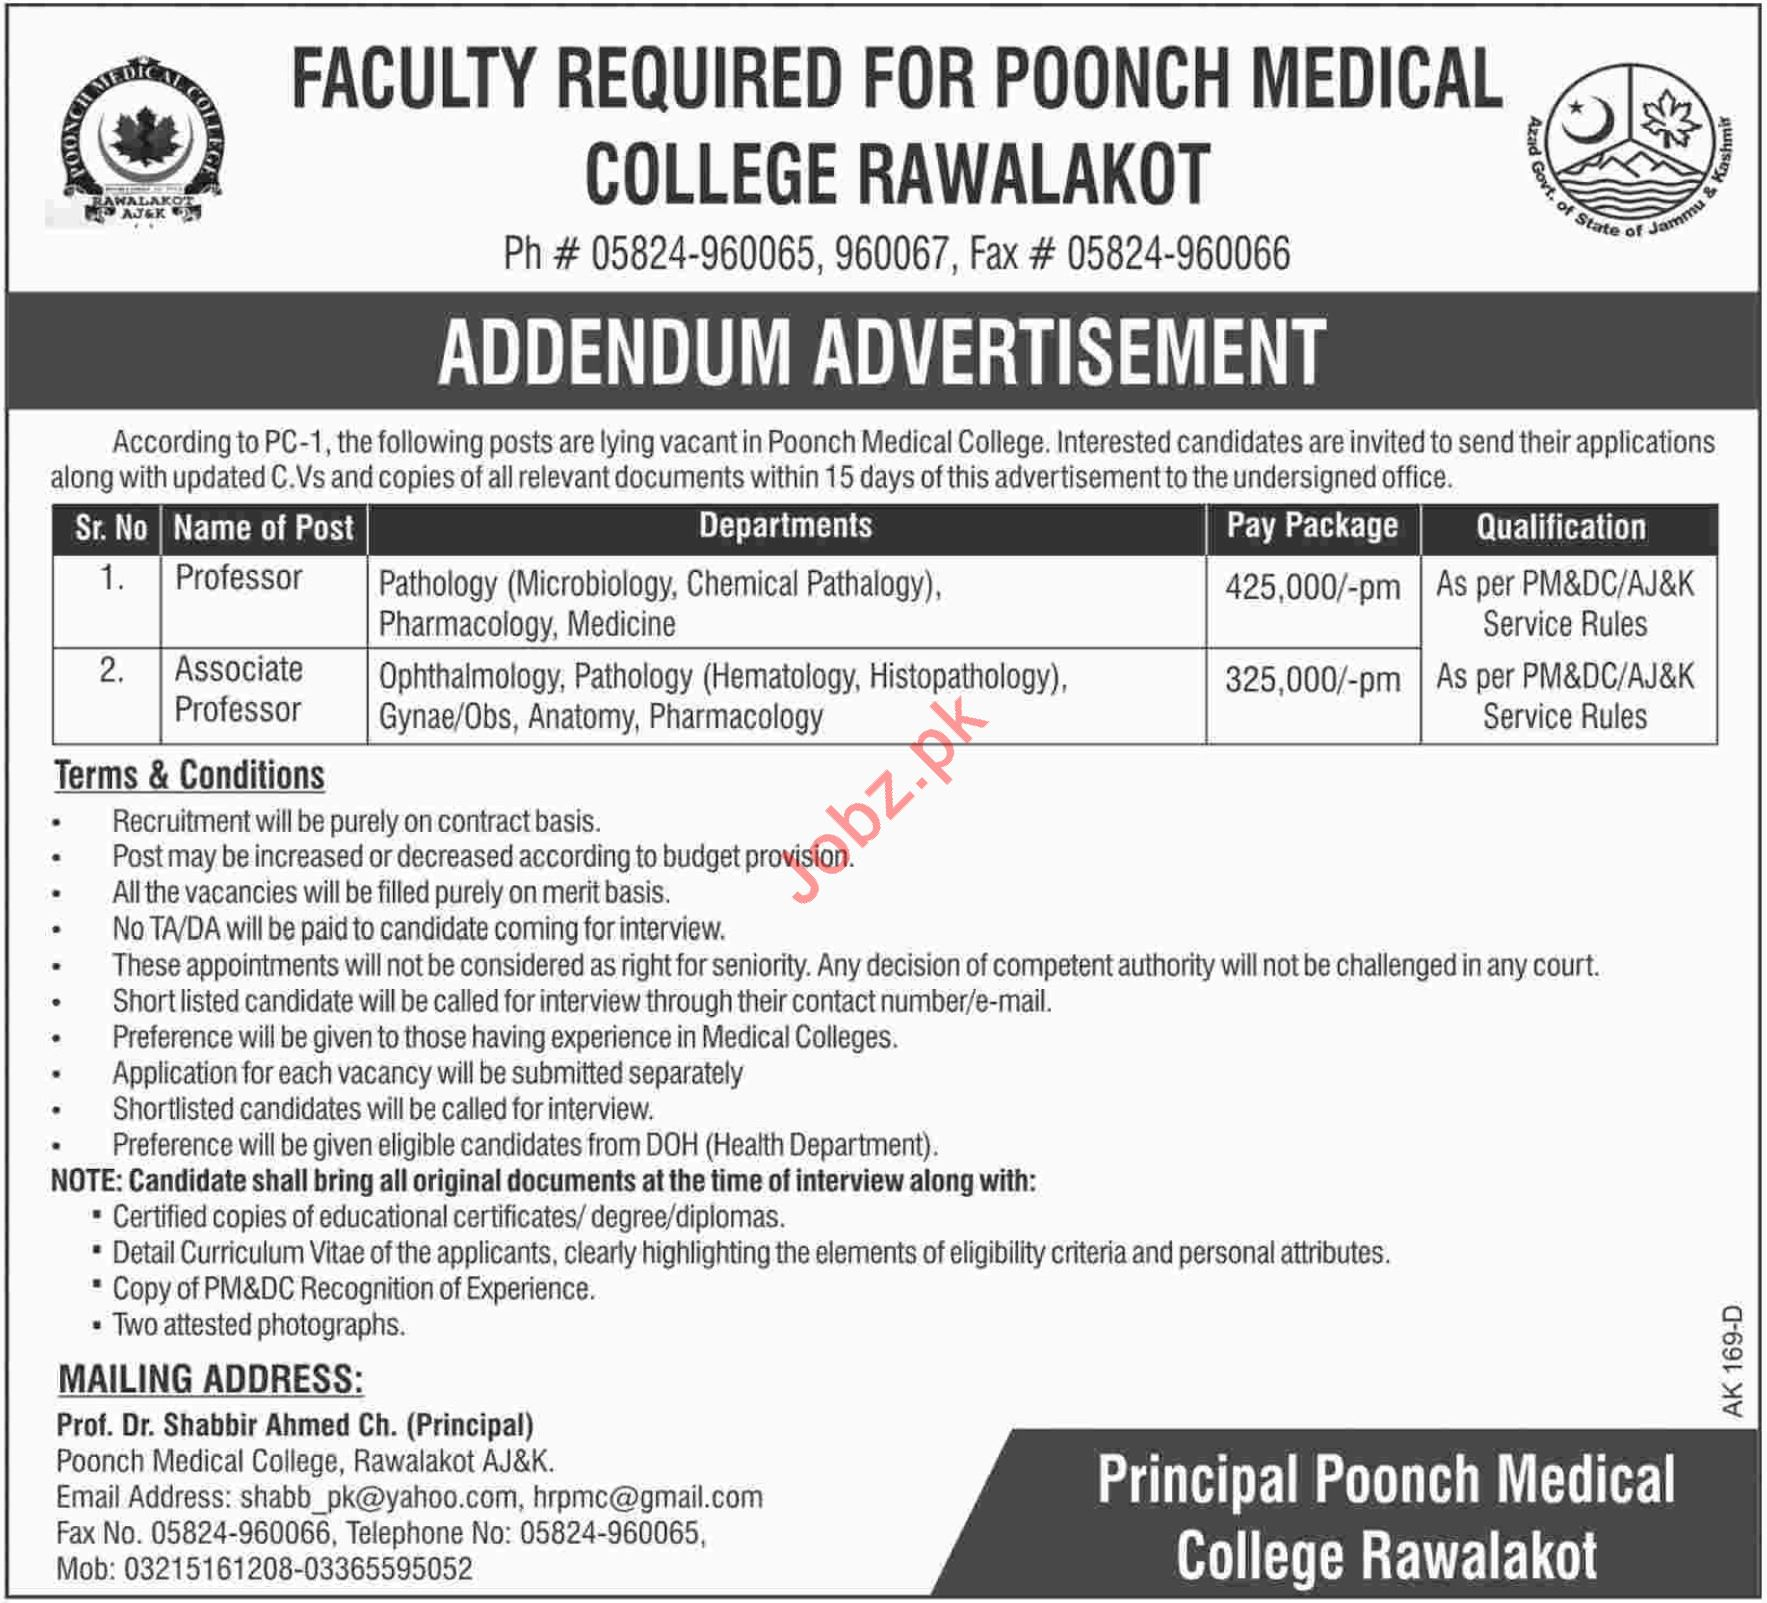 Poonch Medical College Rawalakot Jobs 2018 for Professors